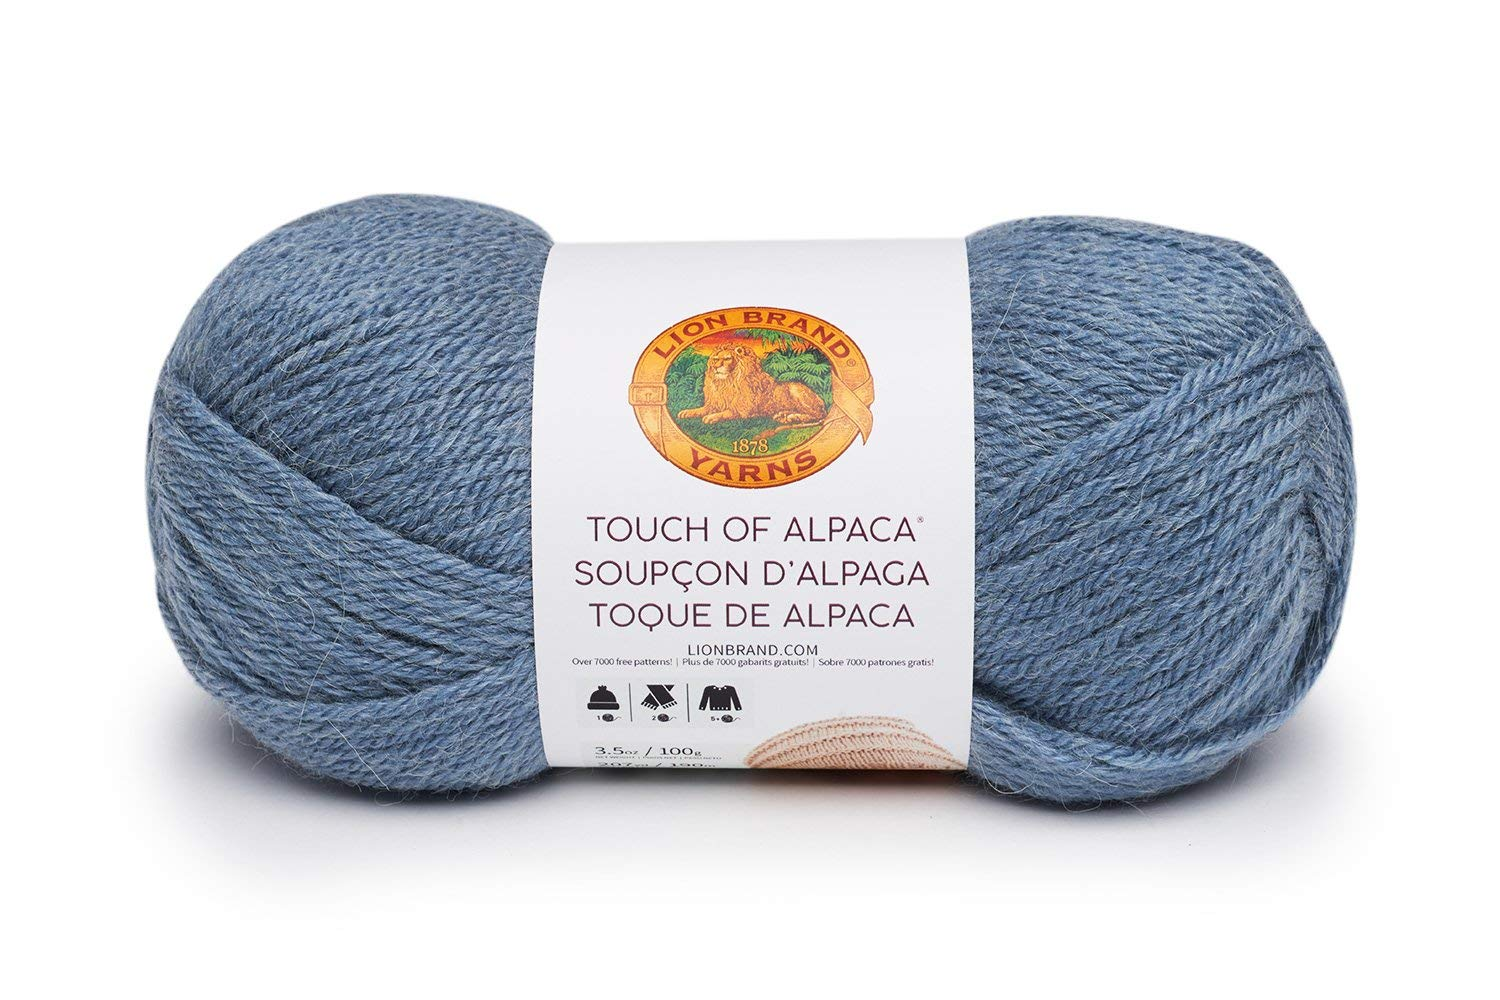 Dusty Blue Lion Brand Yarn 124-108 Touch of Alpaca Bonus Bundle Yarn